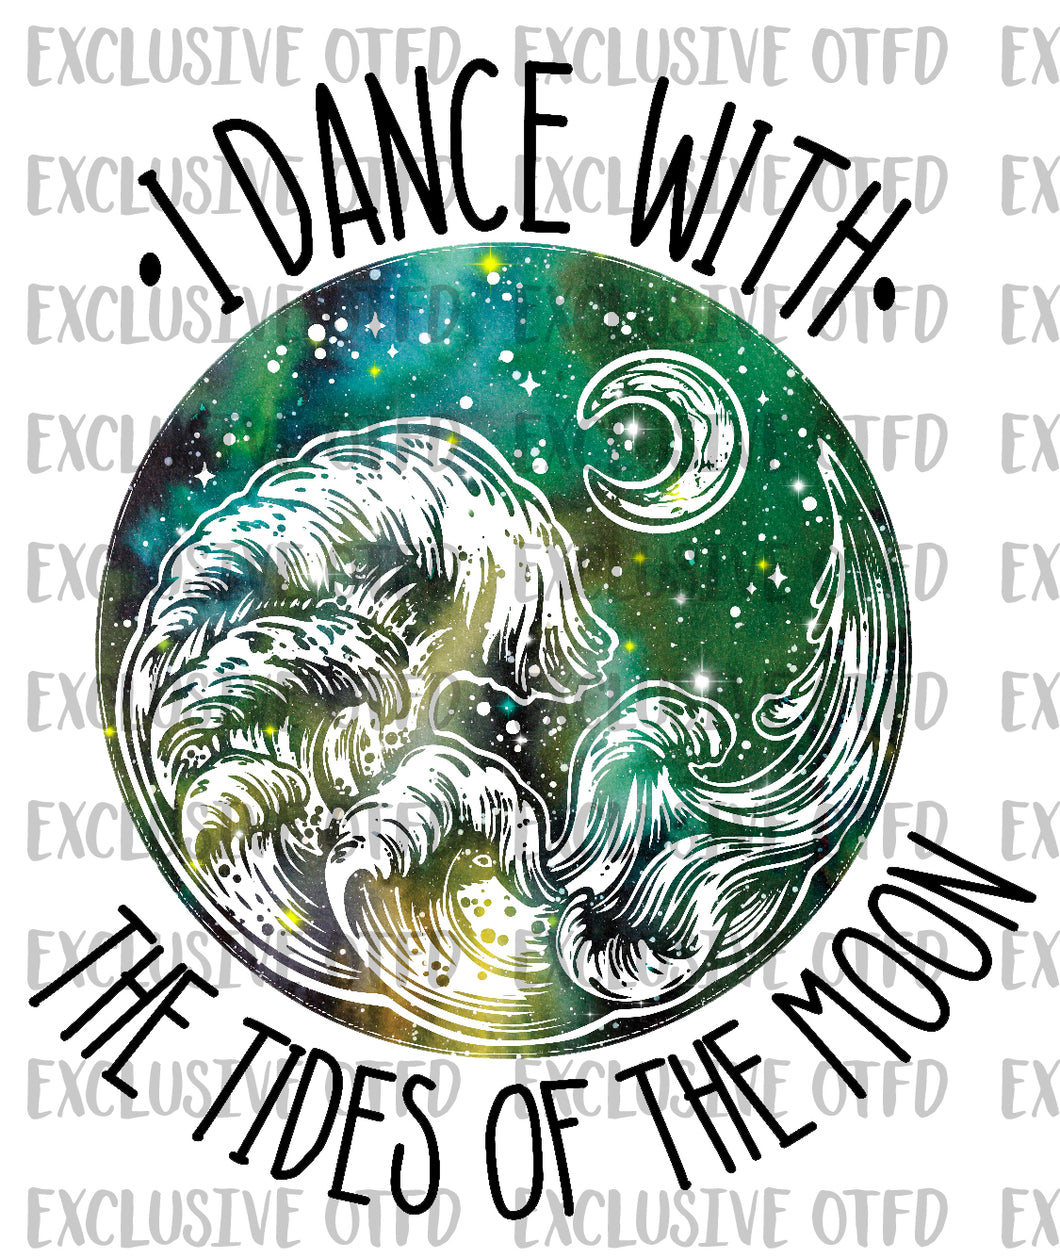 I dance with the tides